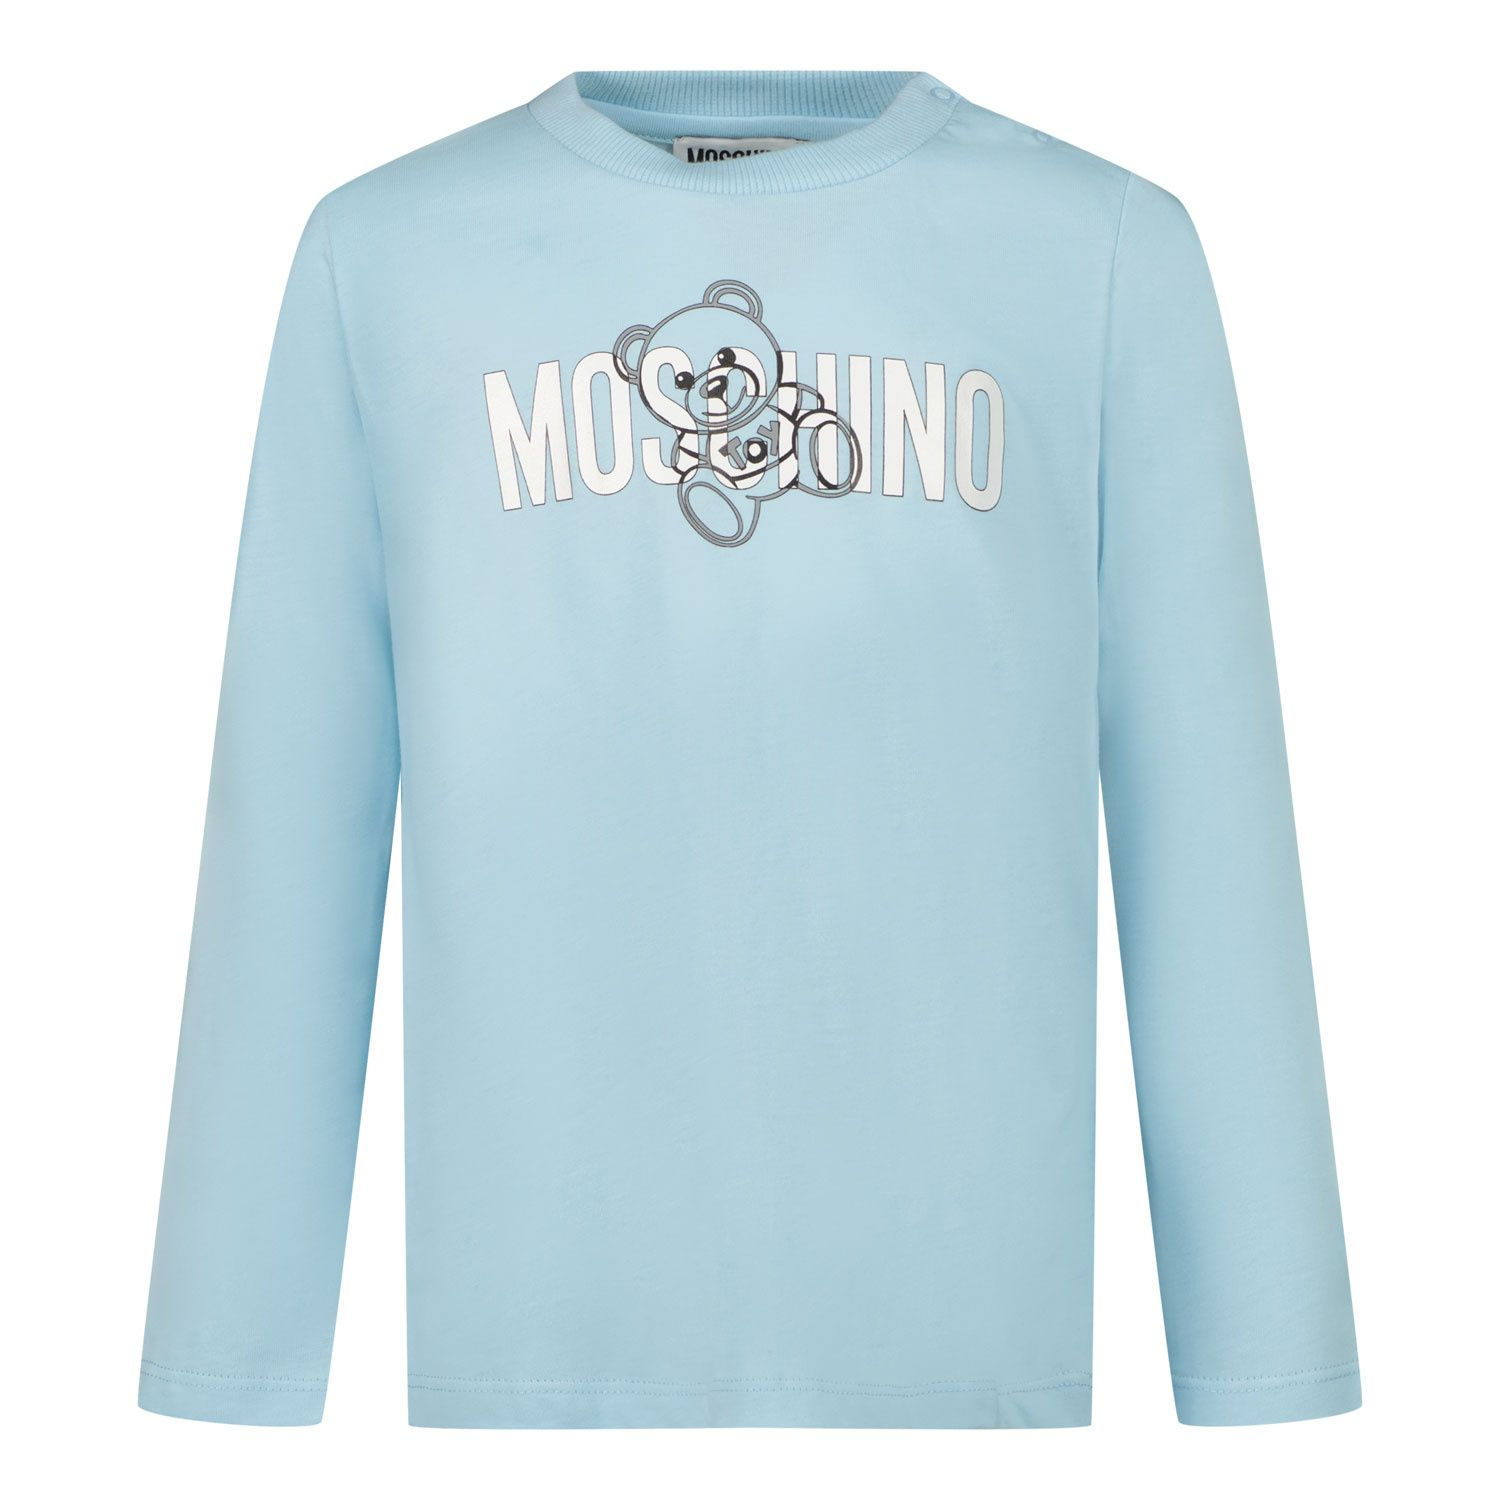 Picture of Moschino MPO005 baby shirt light blue